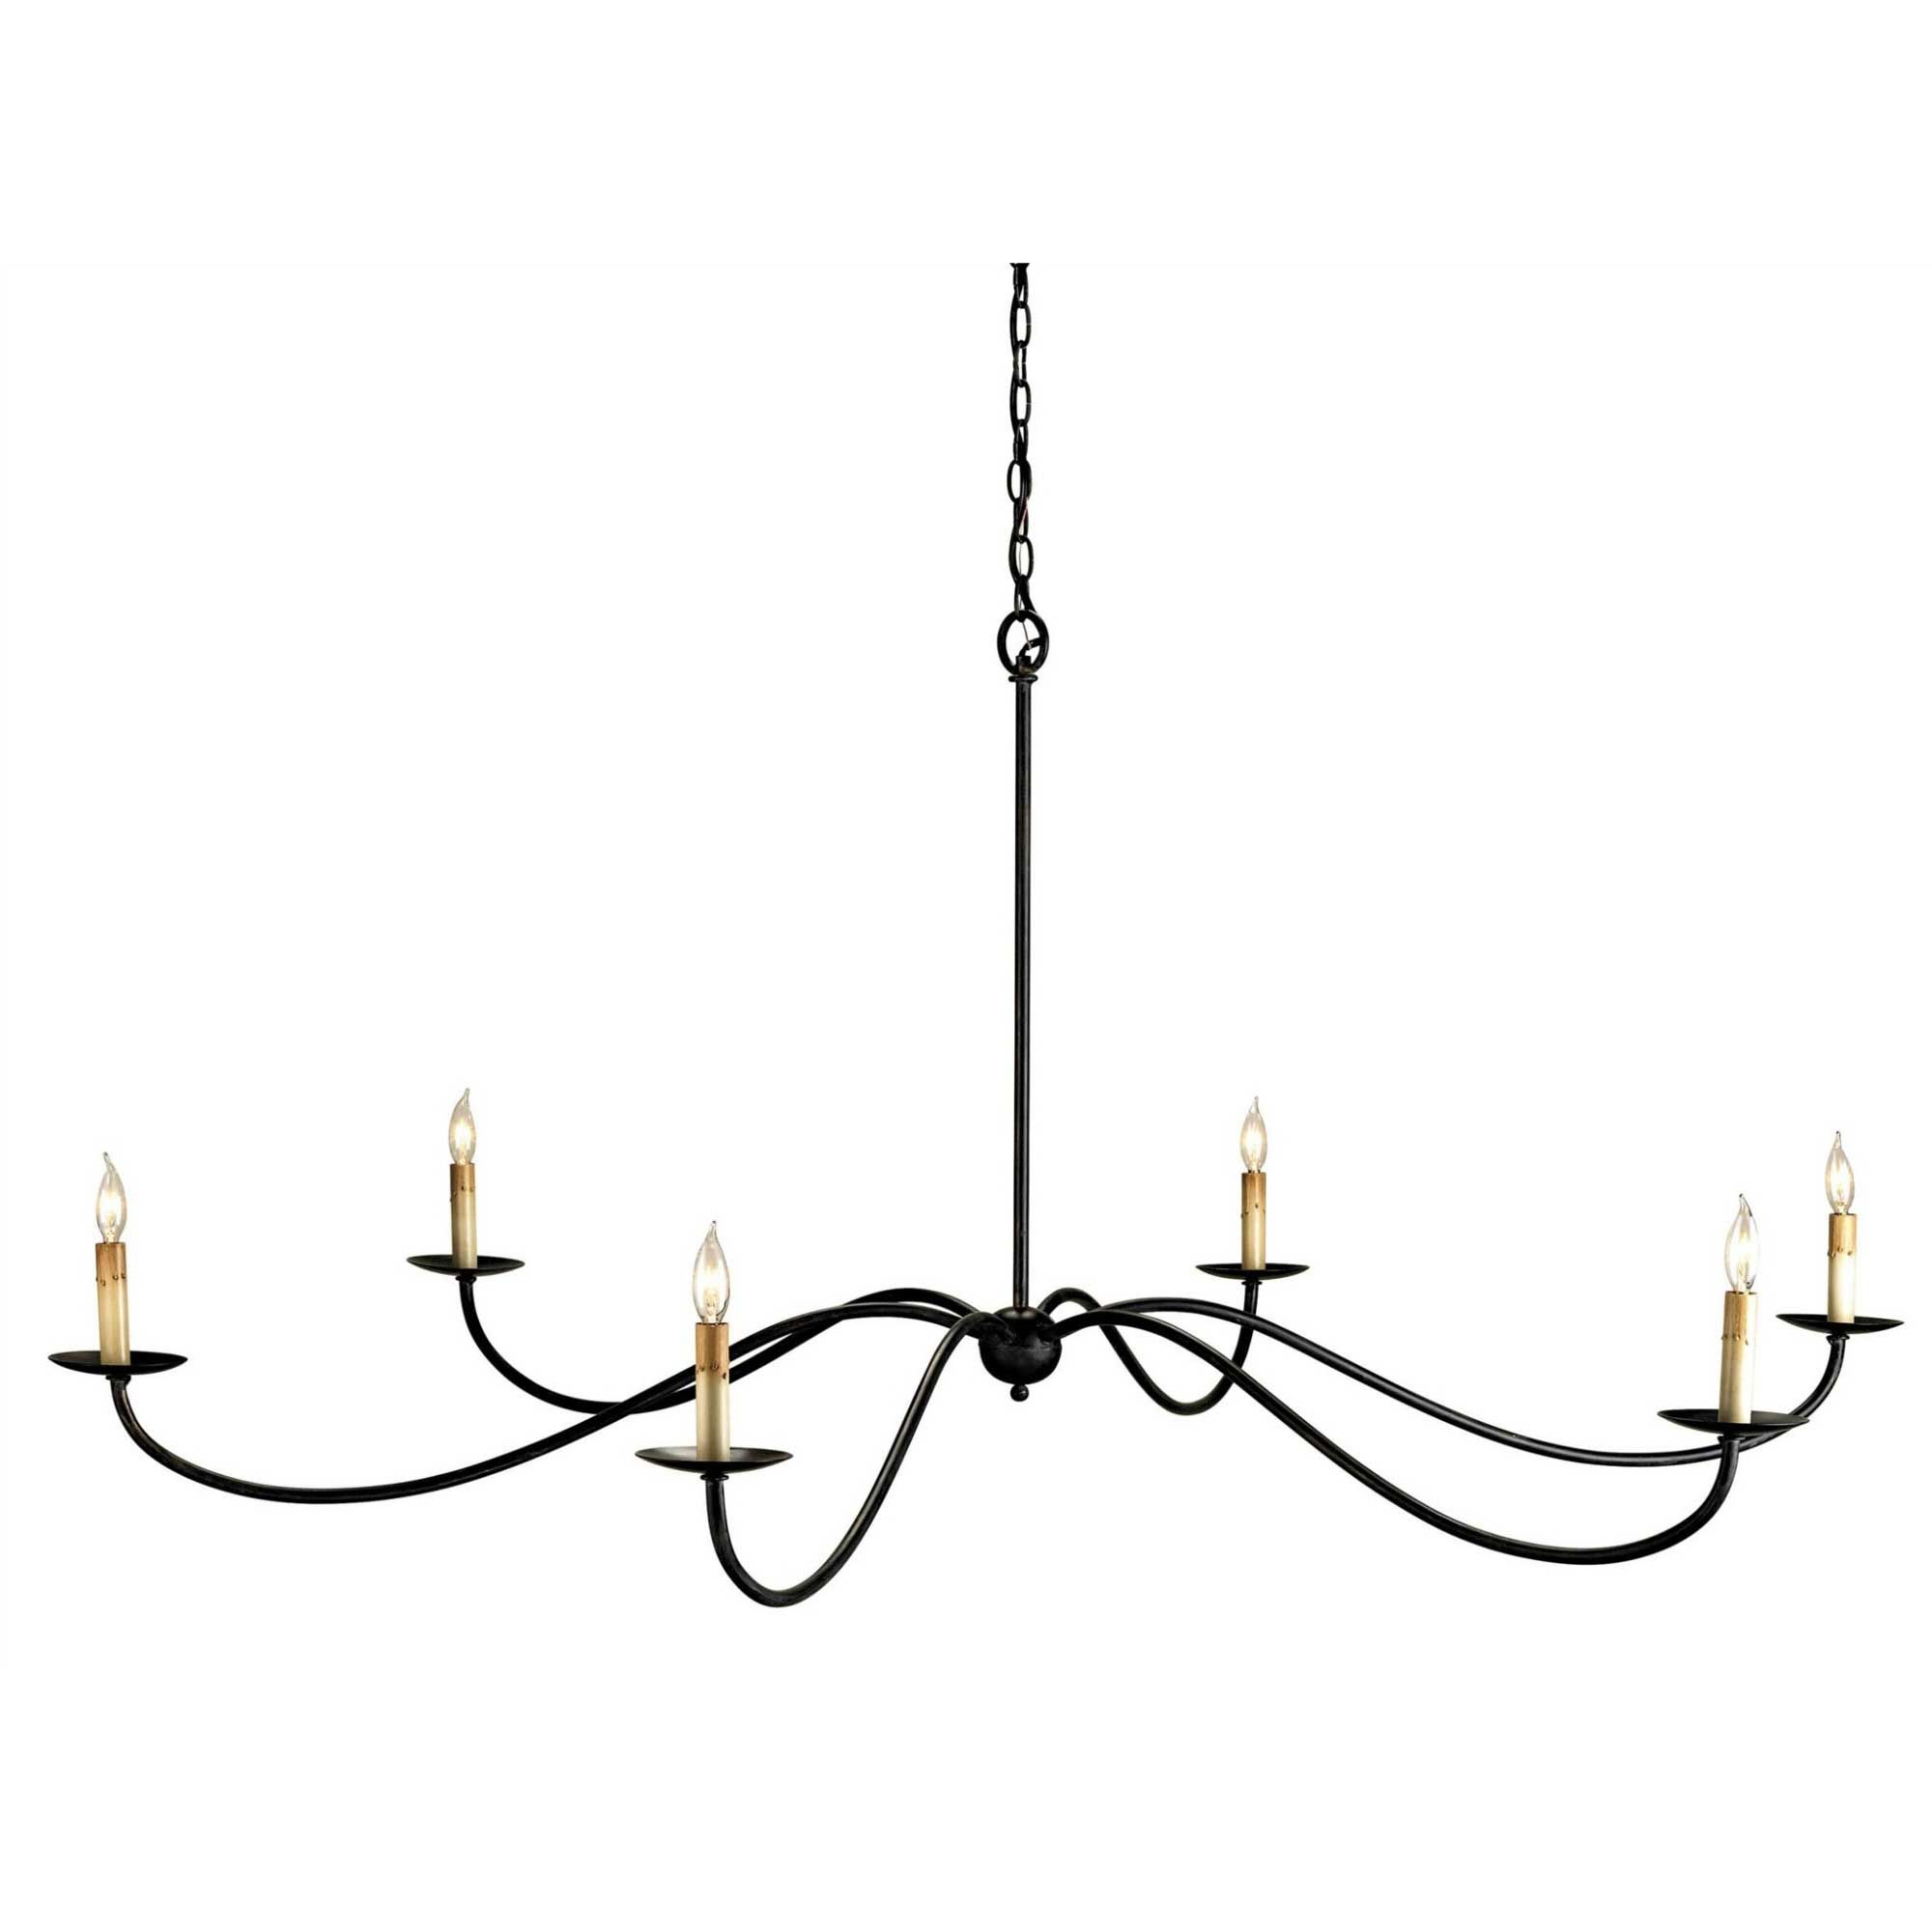 Saxon Chandelier Features Delicate Wrought Iron Arms Reaching Out